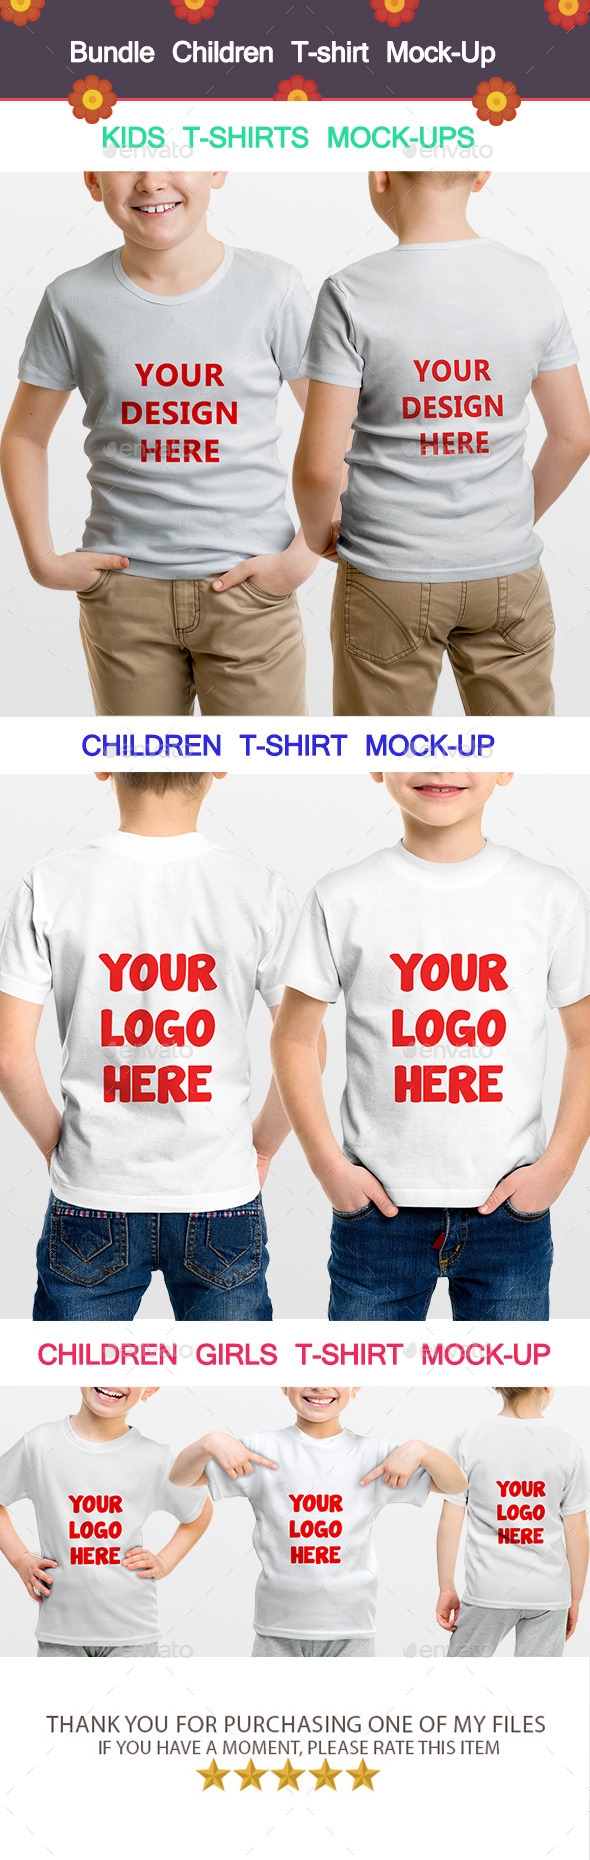 GraphicRiver Bundle Children T-shirt Mock-Up 11875250